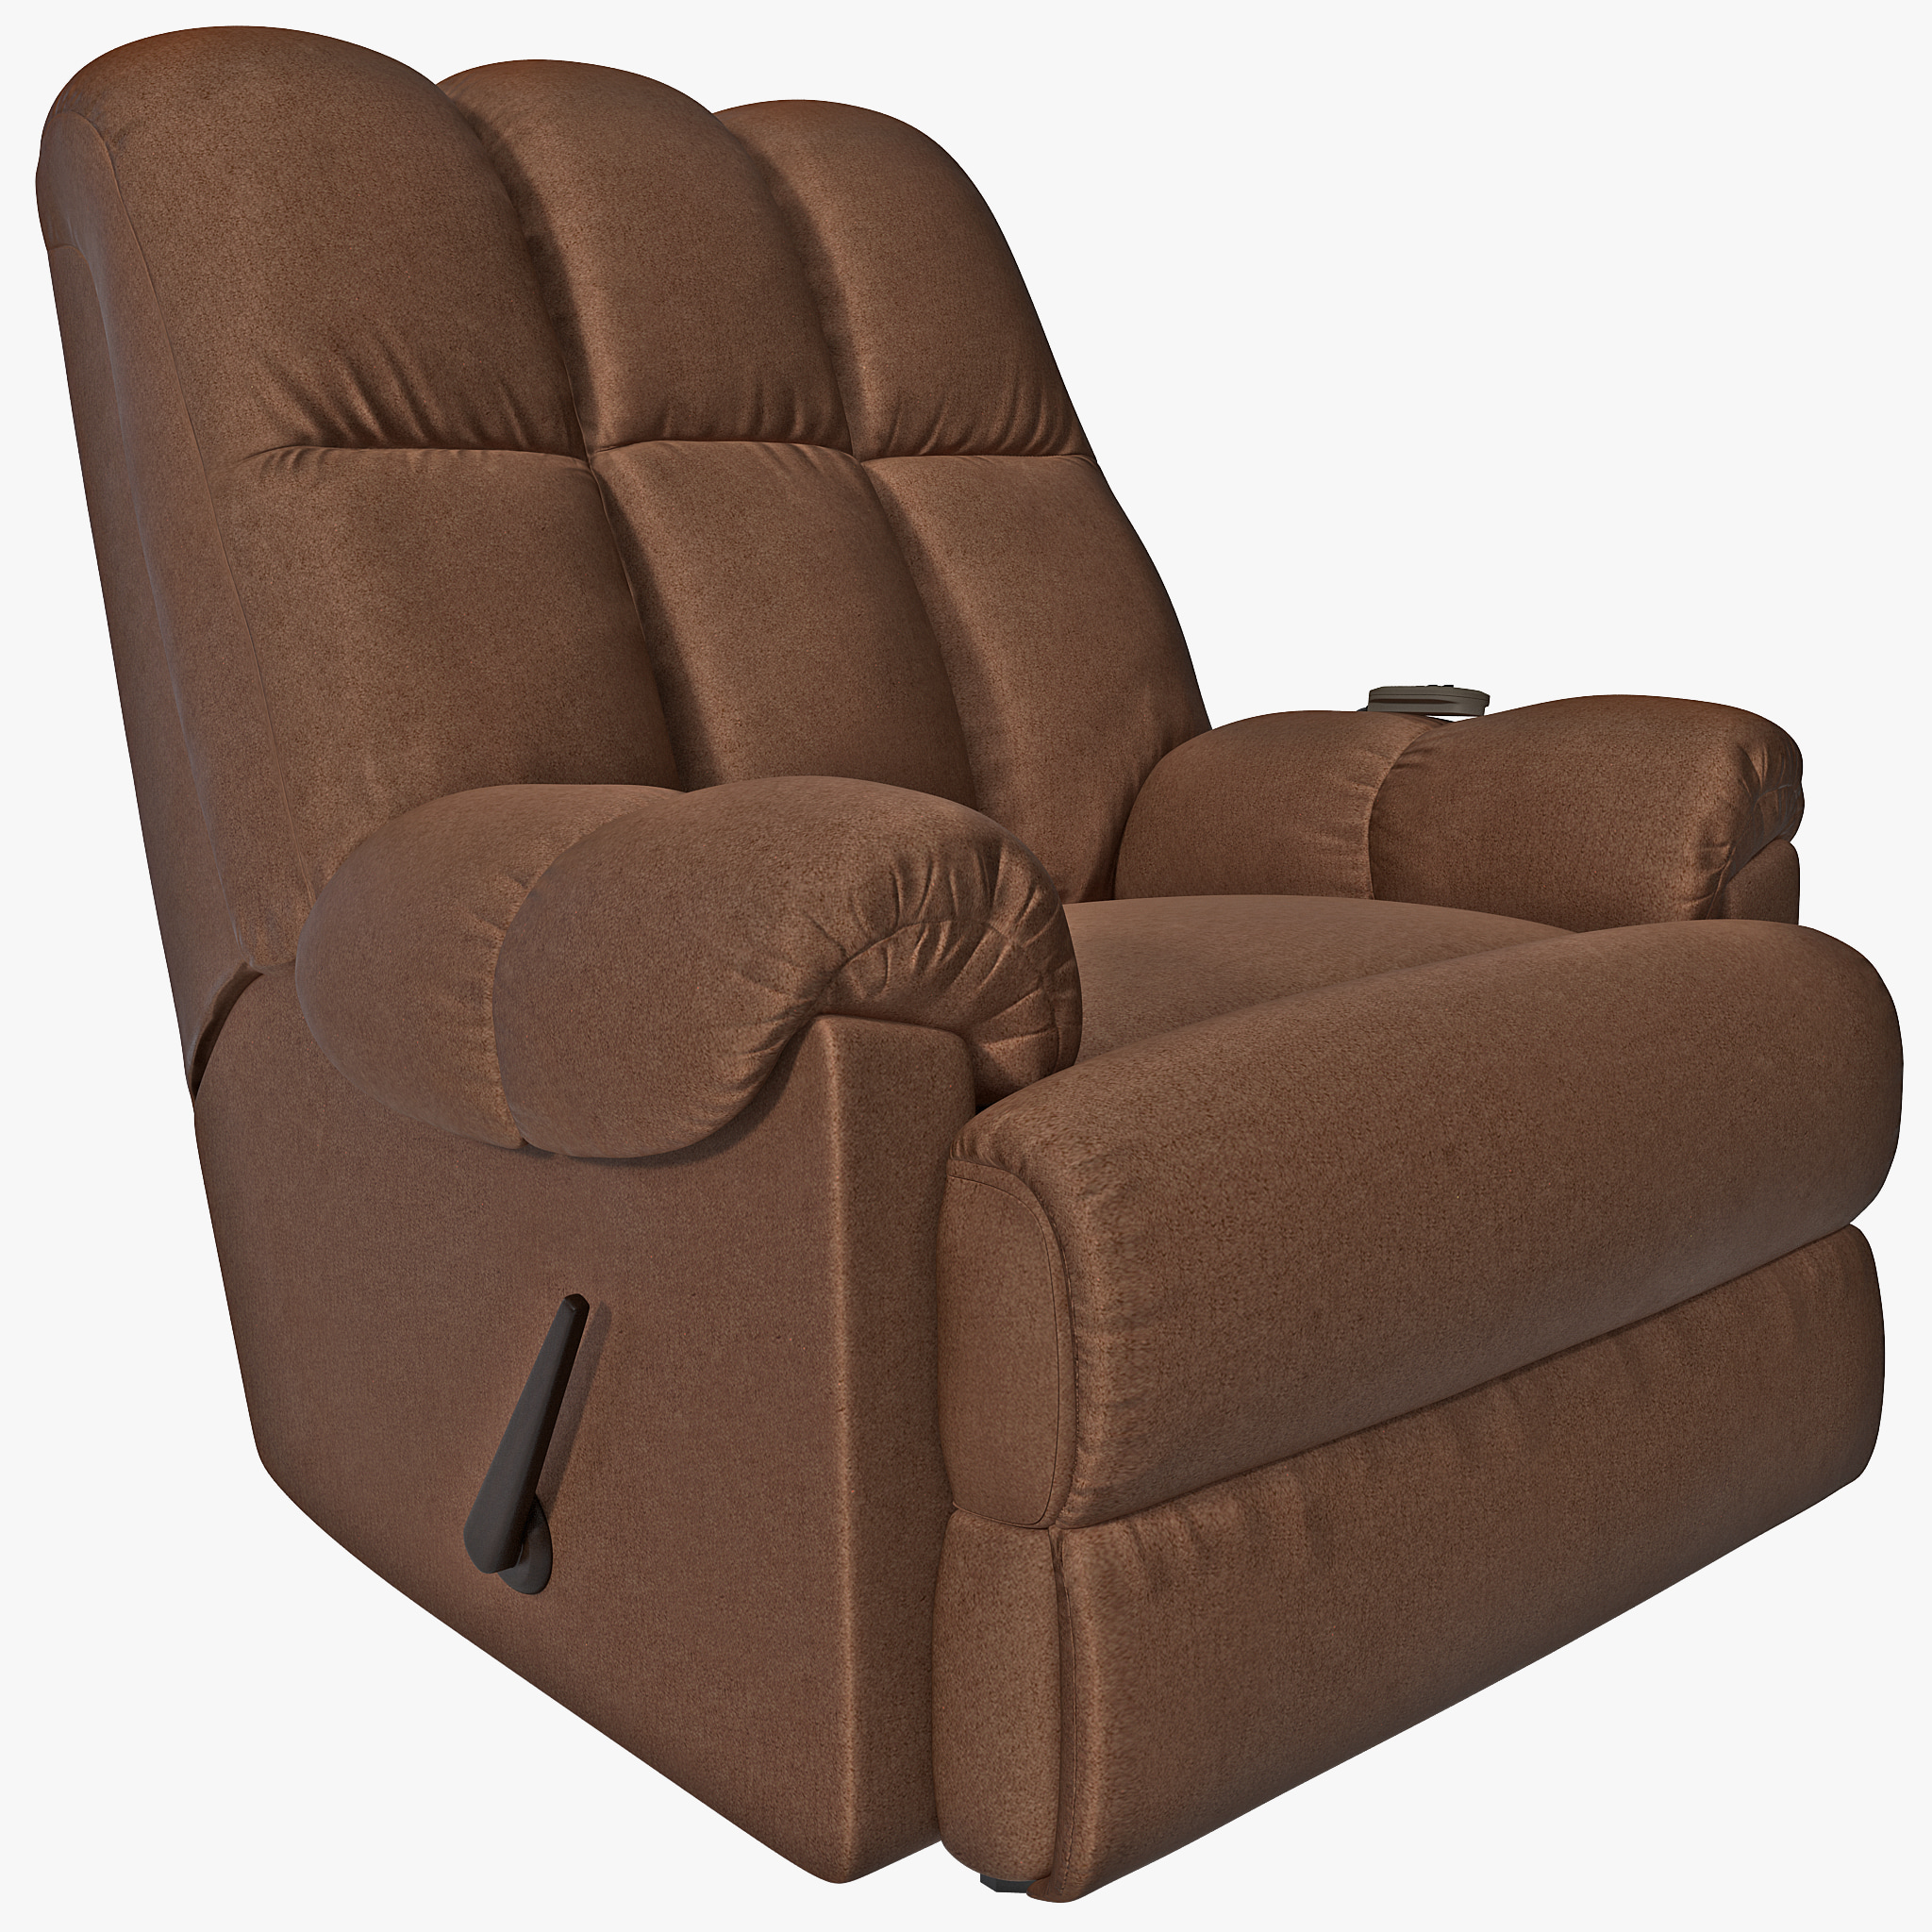 Padded Massage Rocker Recliner_1.jpg